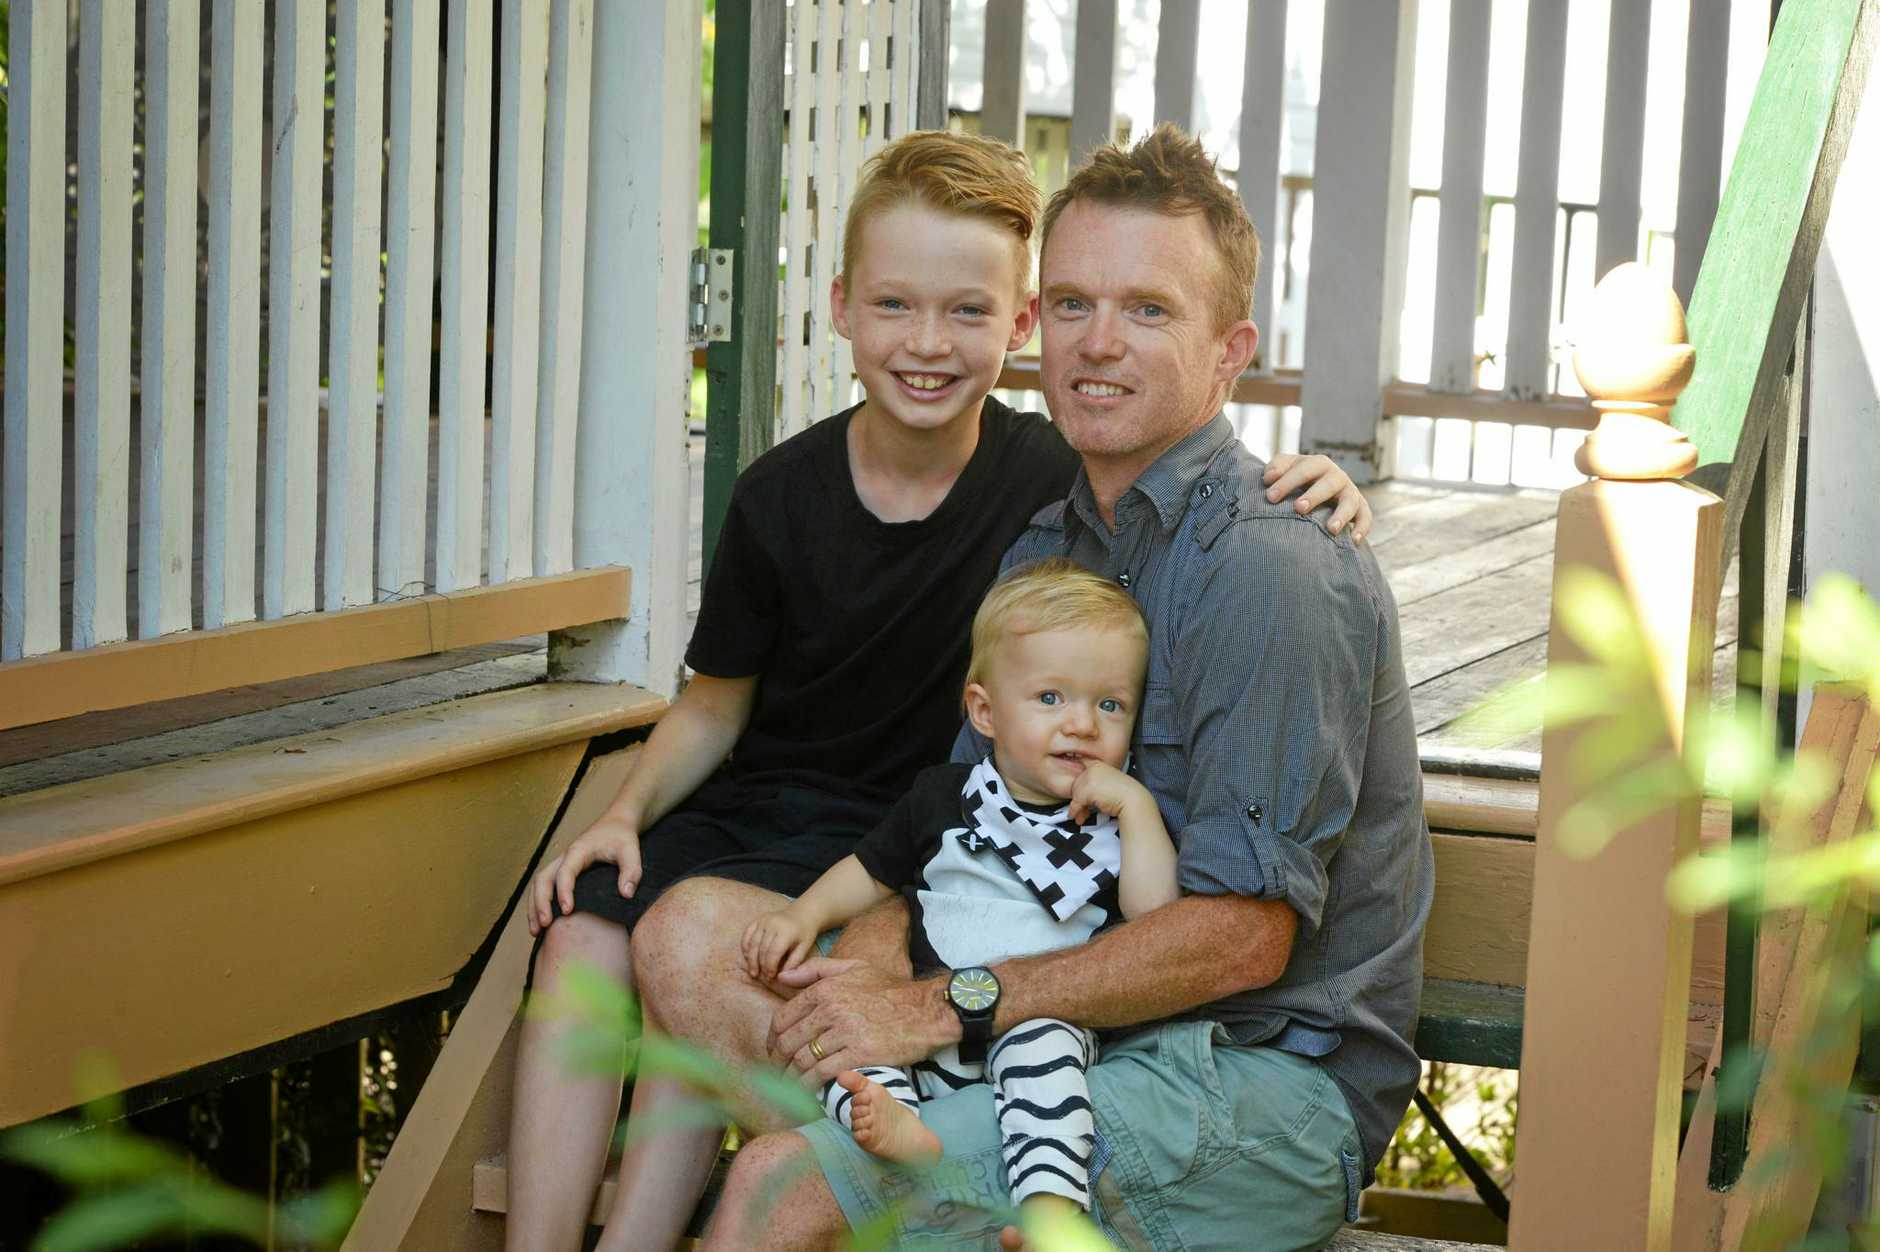 Jamison, Ben and baby Nixon Thornton, part of a family of six who have lived in tiny homes for about four years.